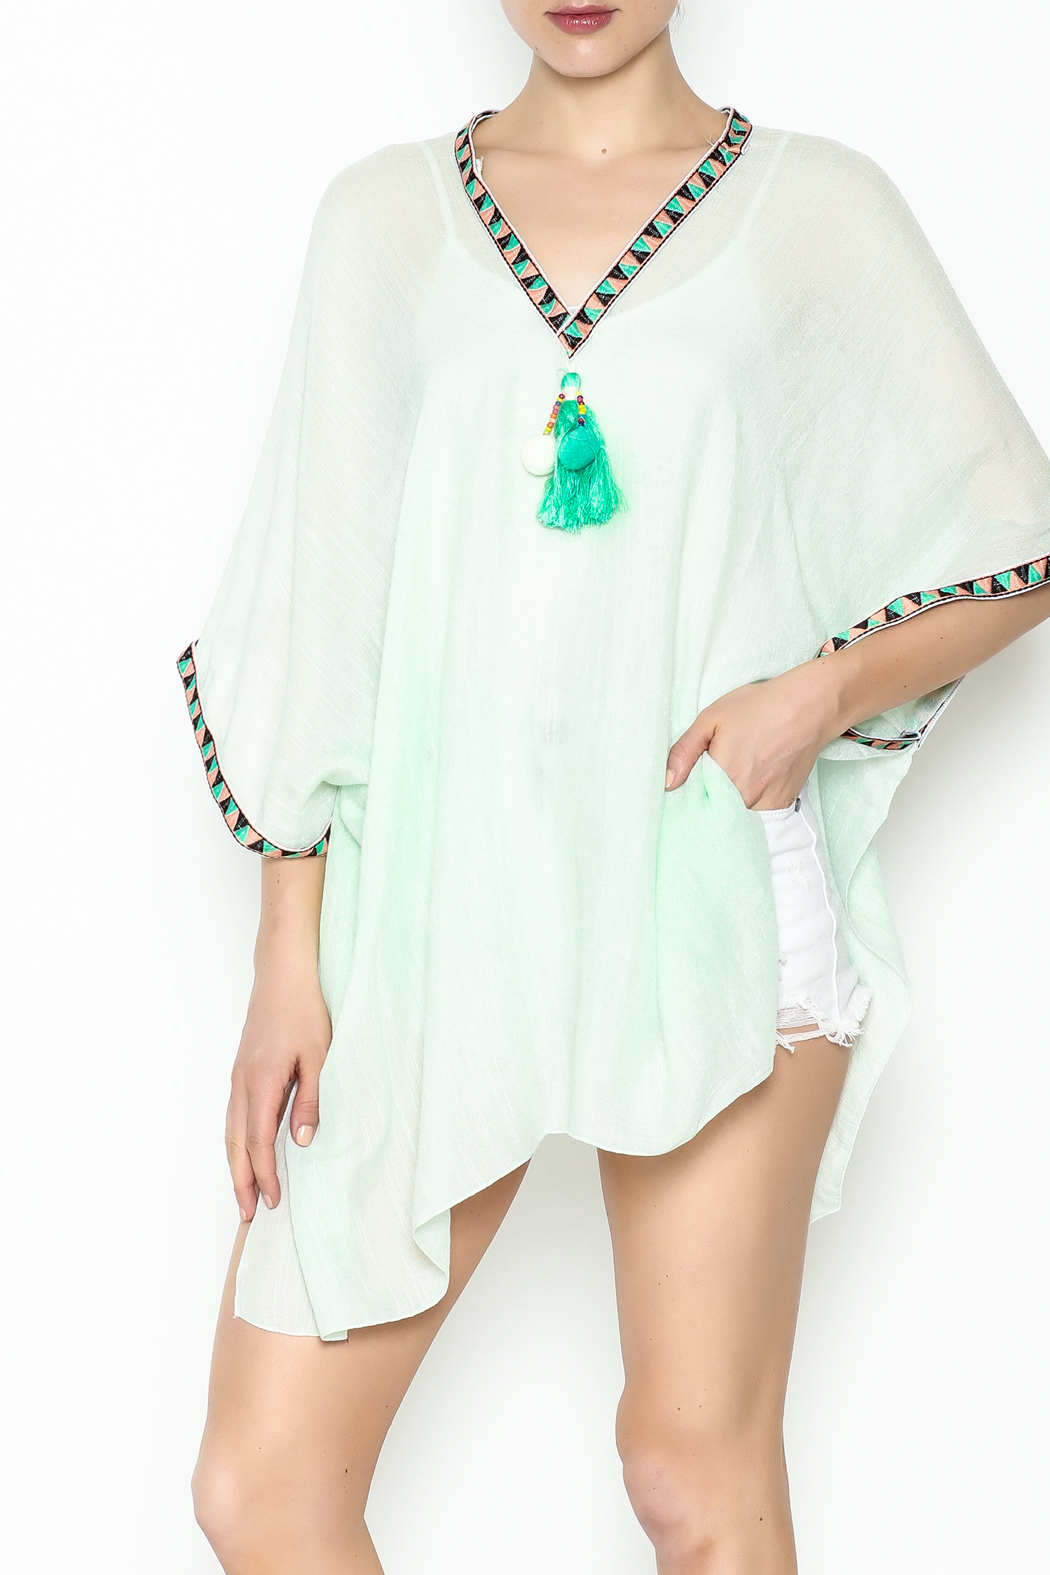 Grace & Emma Boho Cover-Up Top - Front Cropped Image